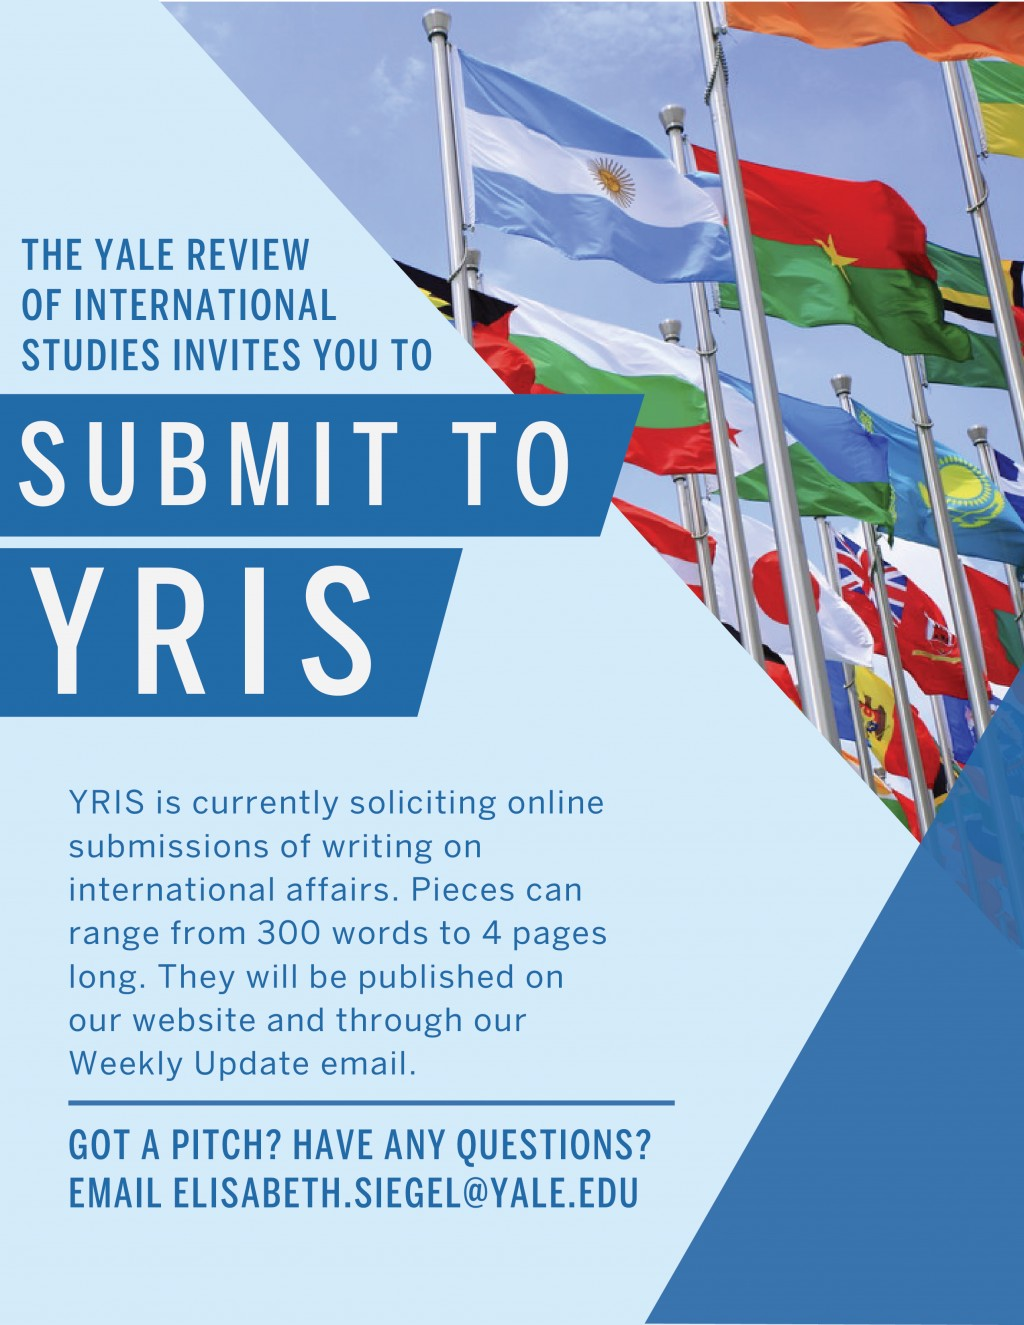 018 Online Poster Research Paper Free Submission Of Marvelous Papers Large